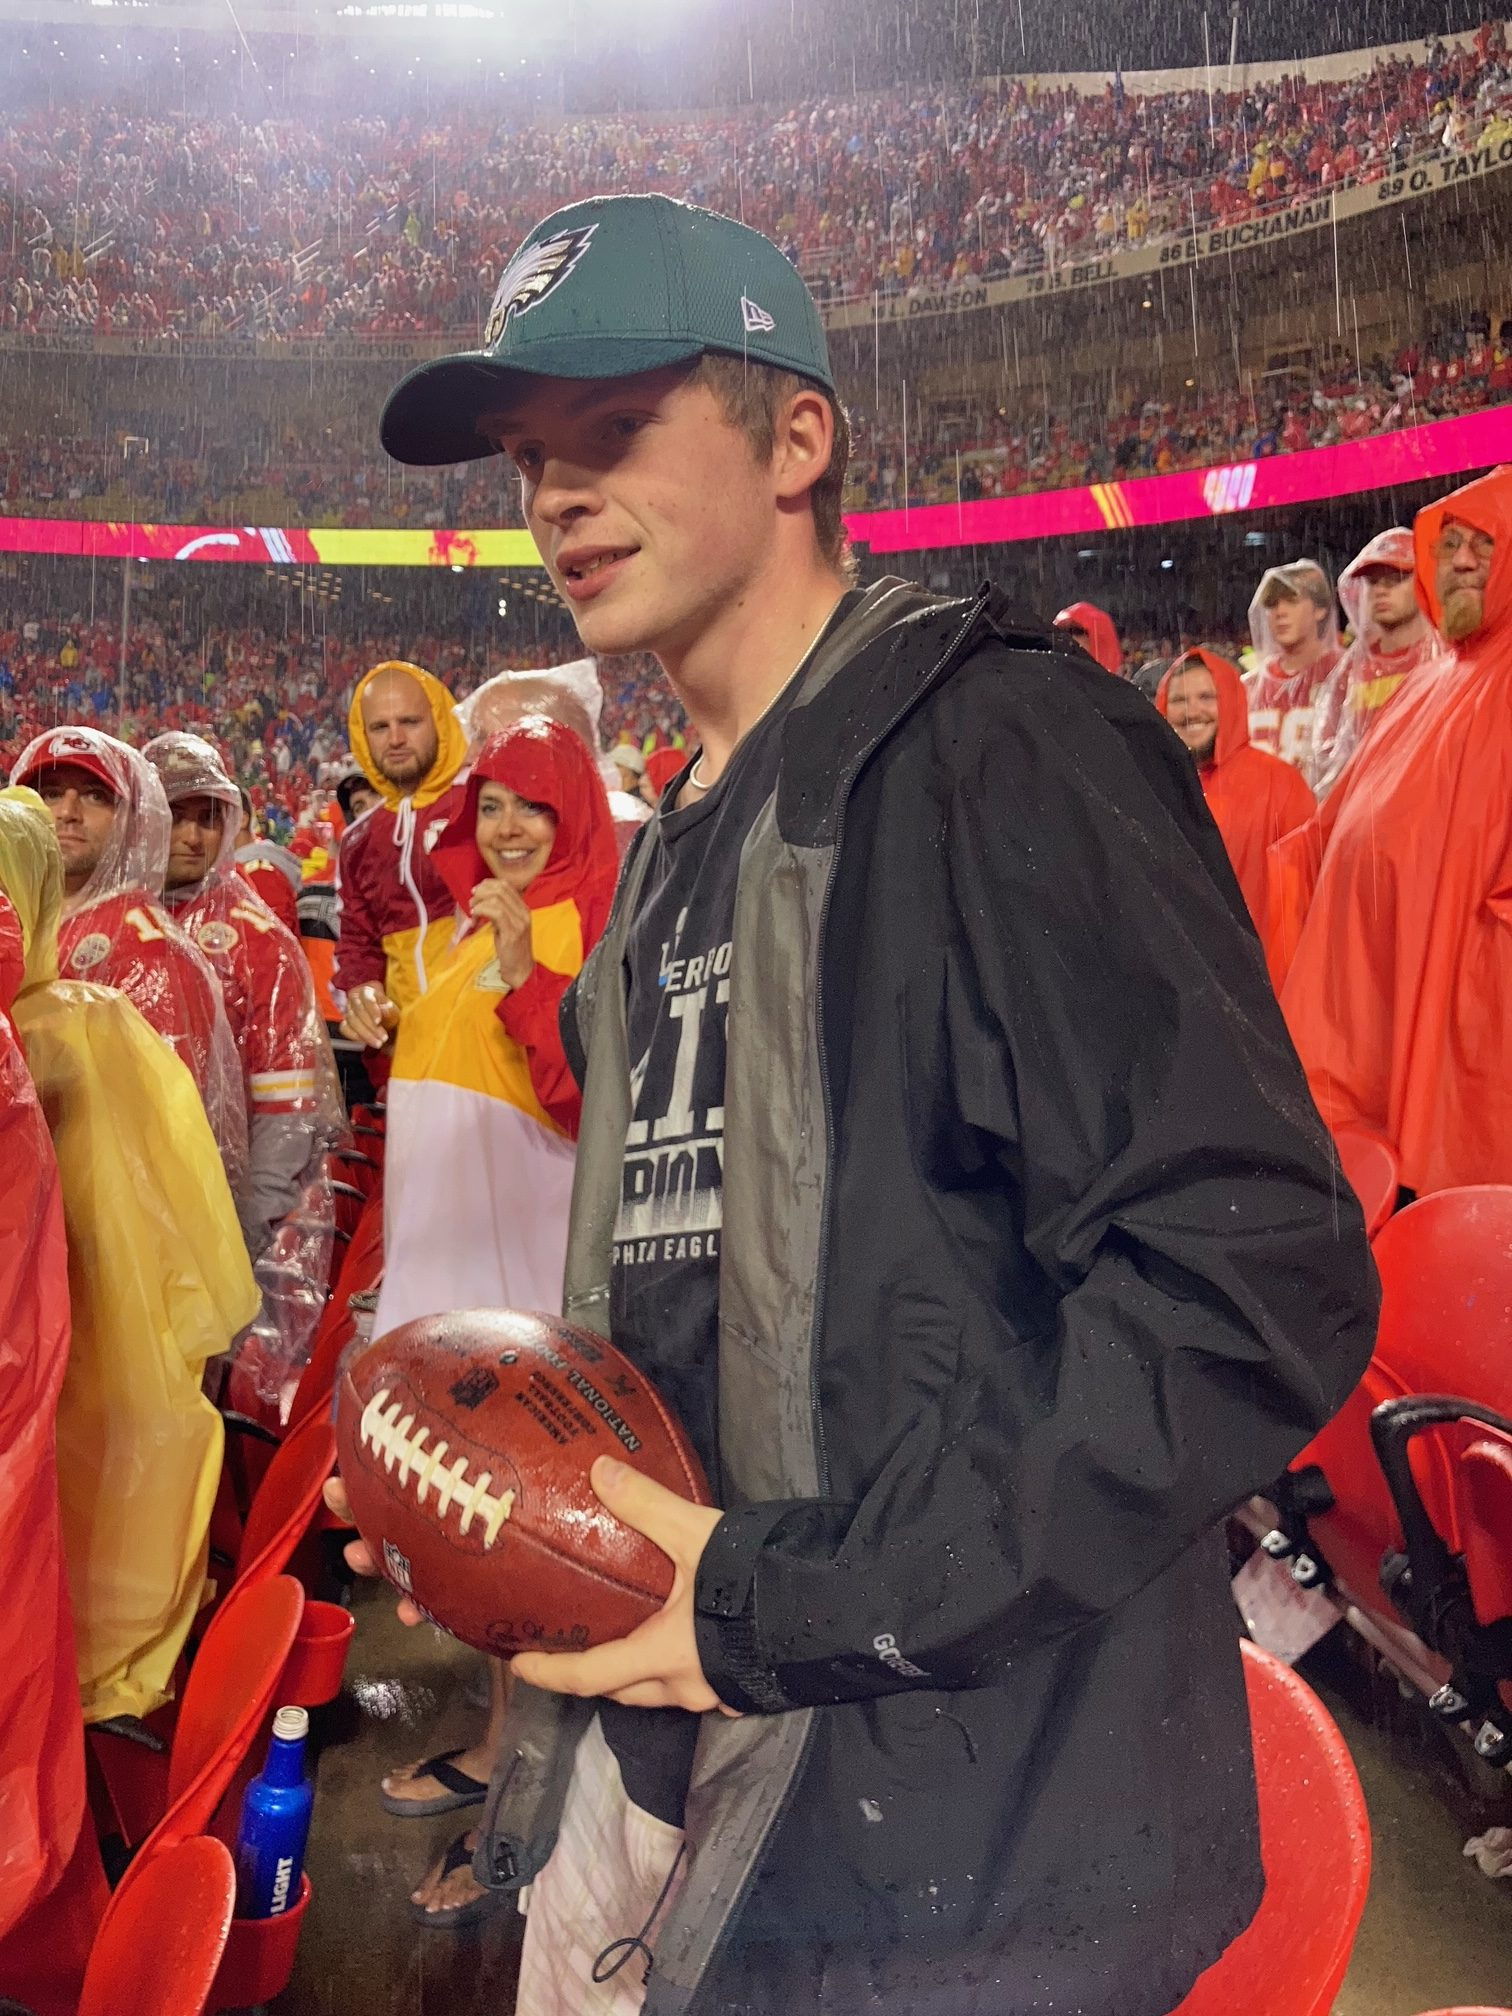 Sedgwick resident catches game ball after Chiefs field goal